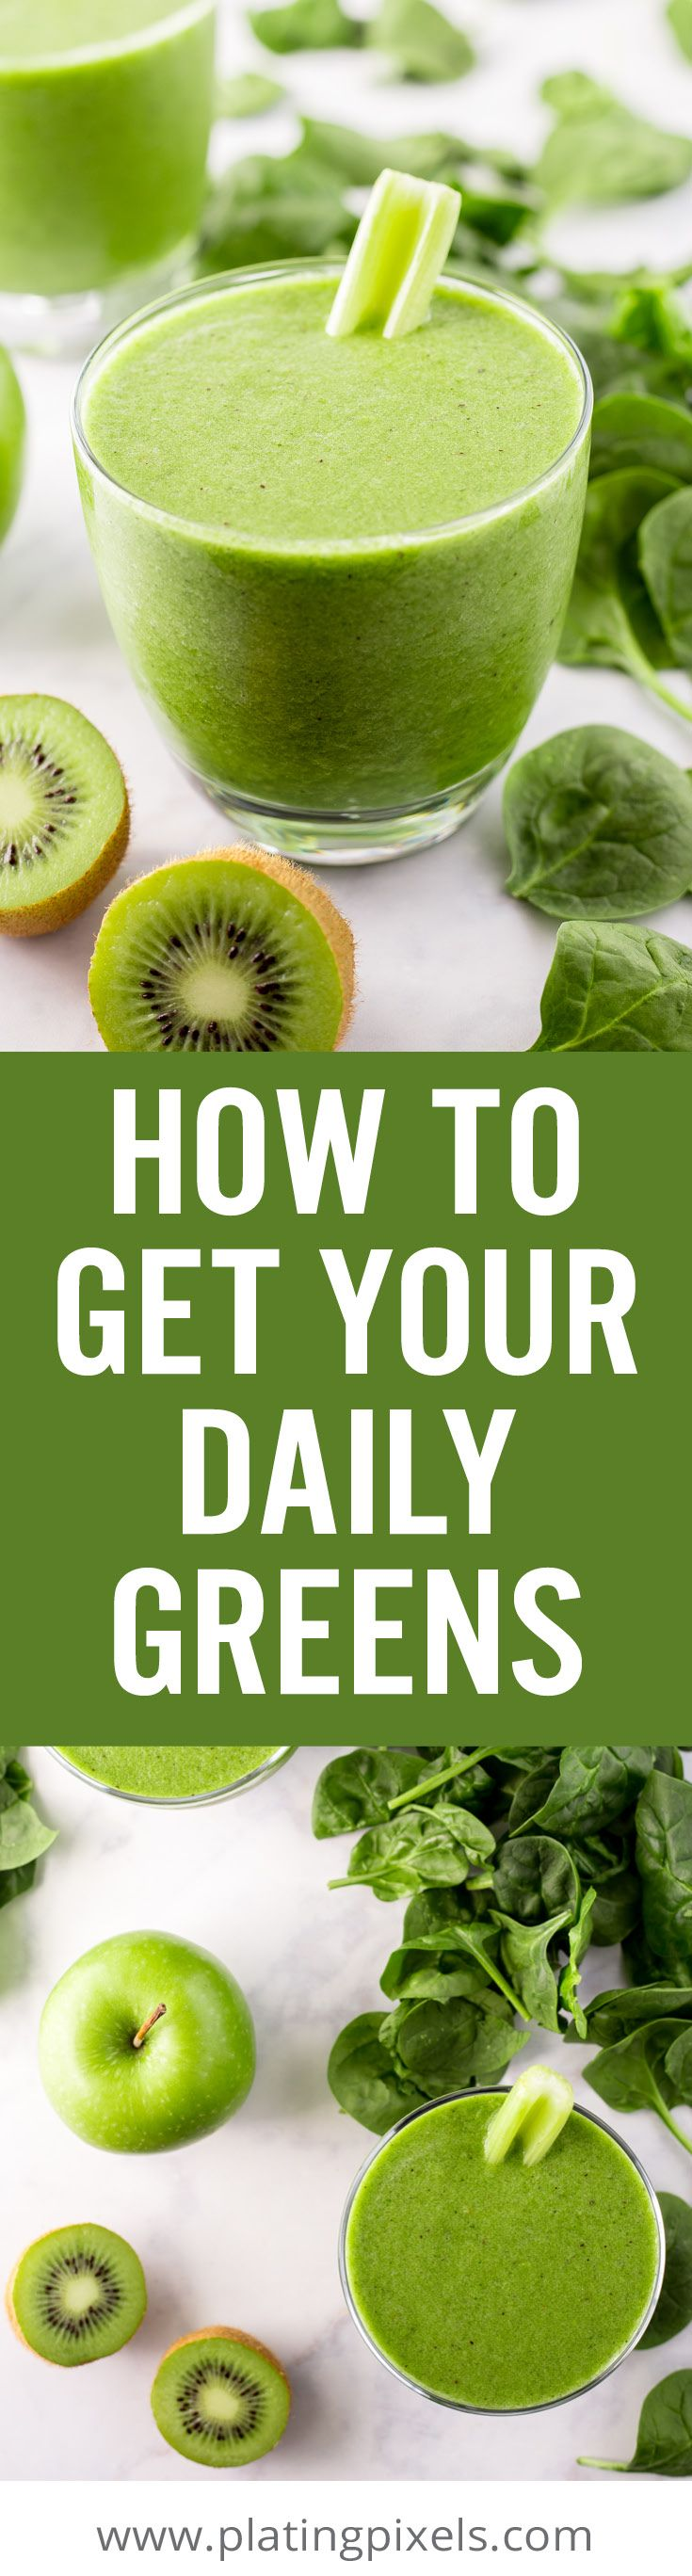 How to Get Your Daily Greens at home, at work or on the go. Learn the health benefits of greens, serving suggestions, what fruits and vegetables to eat, and other tips to make eating greens super easy! Plus a recipe for vegan Super Greens Breakfast Smoothie. - #ad @V8 #V8Mornings www.platingpixels.com